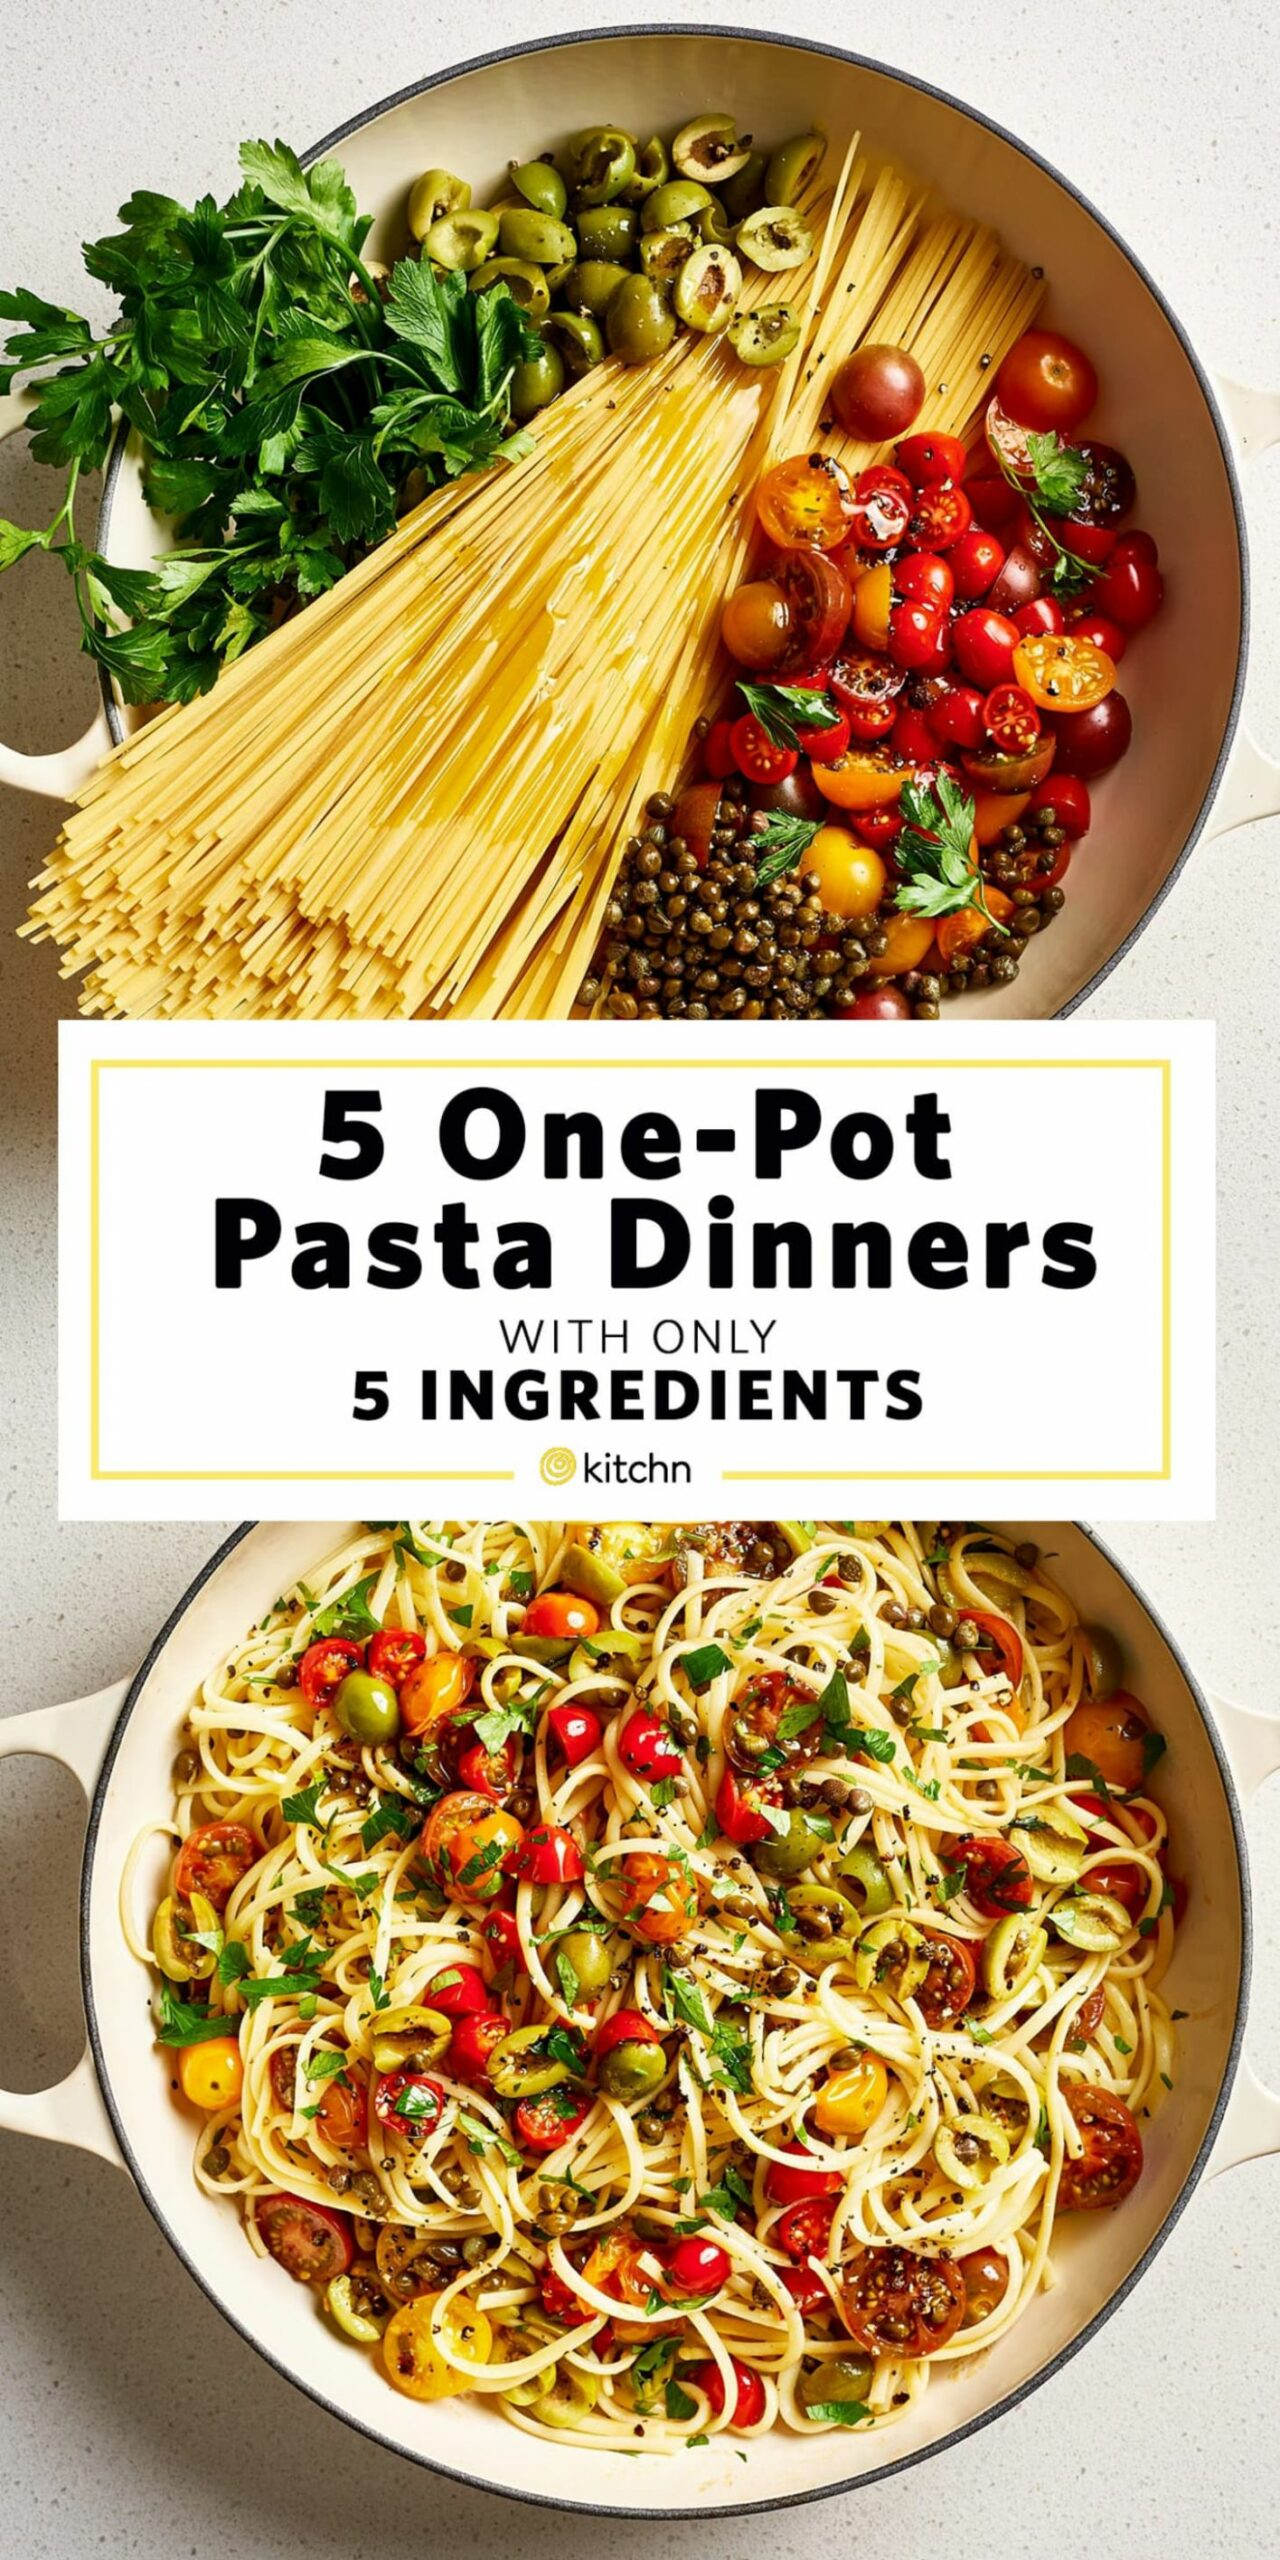 One-Pot Pasta Recipes - Easy Pot Pasta Meal Ideas | Kitchn - Dinner Recipes One Pot